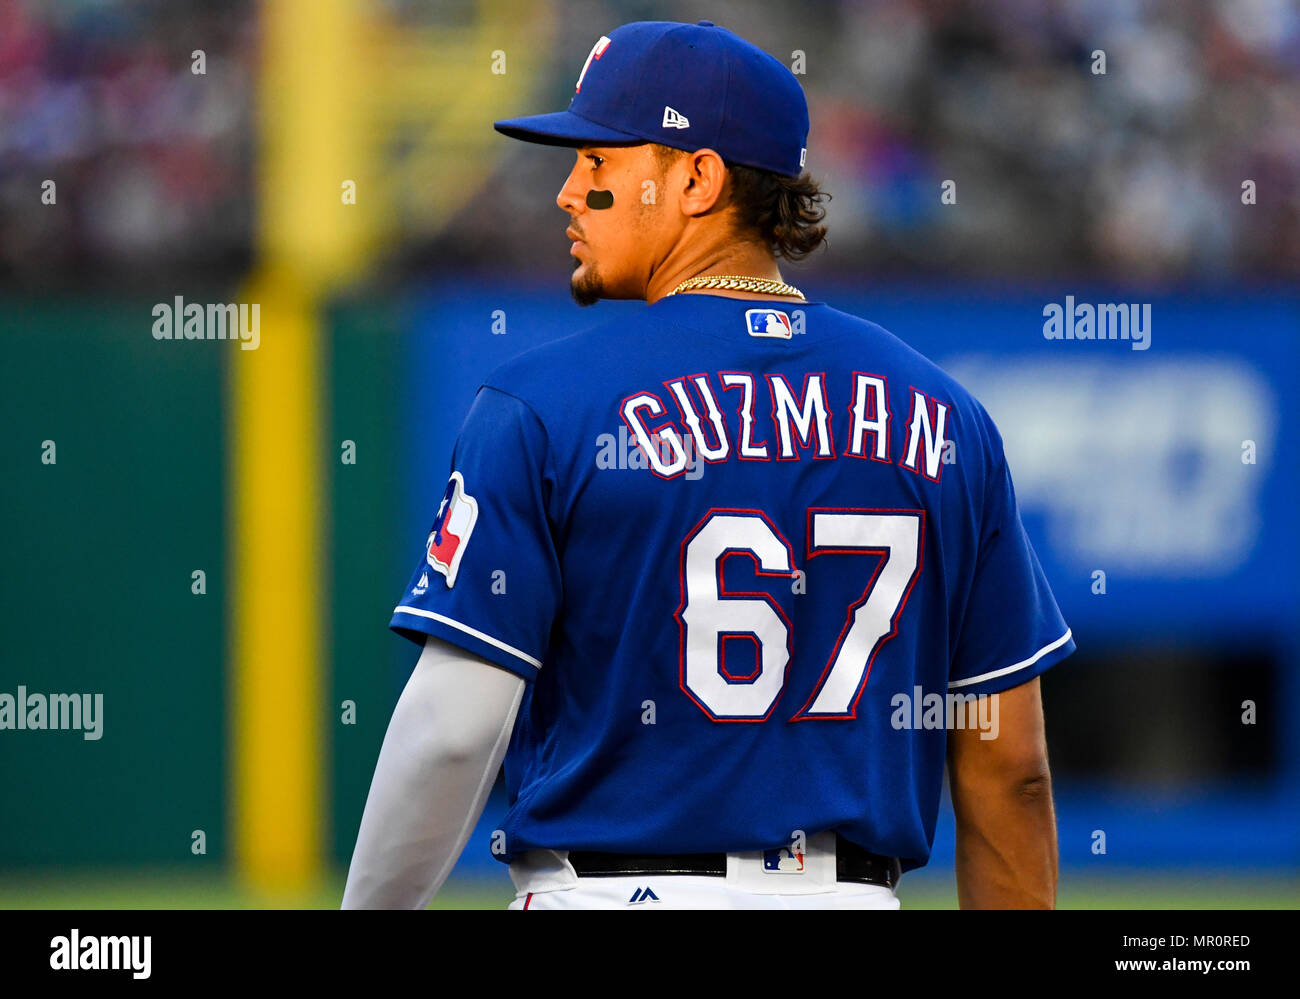 824 Stock Photos Images Alamy Jaket Hoodie New York Yankees 02 Abu May 23 2018 Texas Rangers First Baseman Ronald Guzman 67 During An Mlb